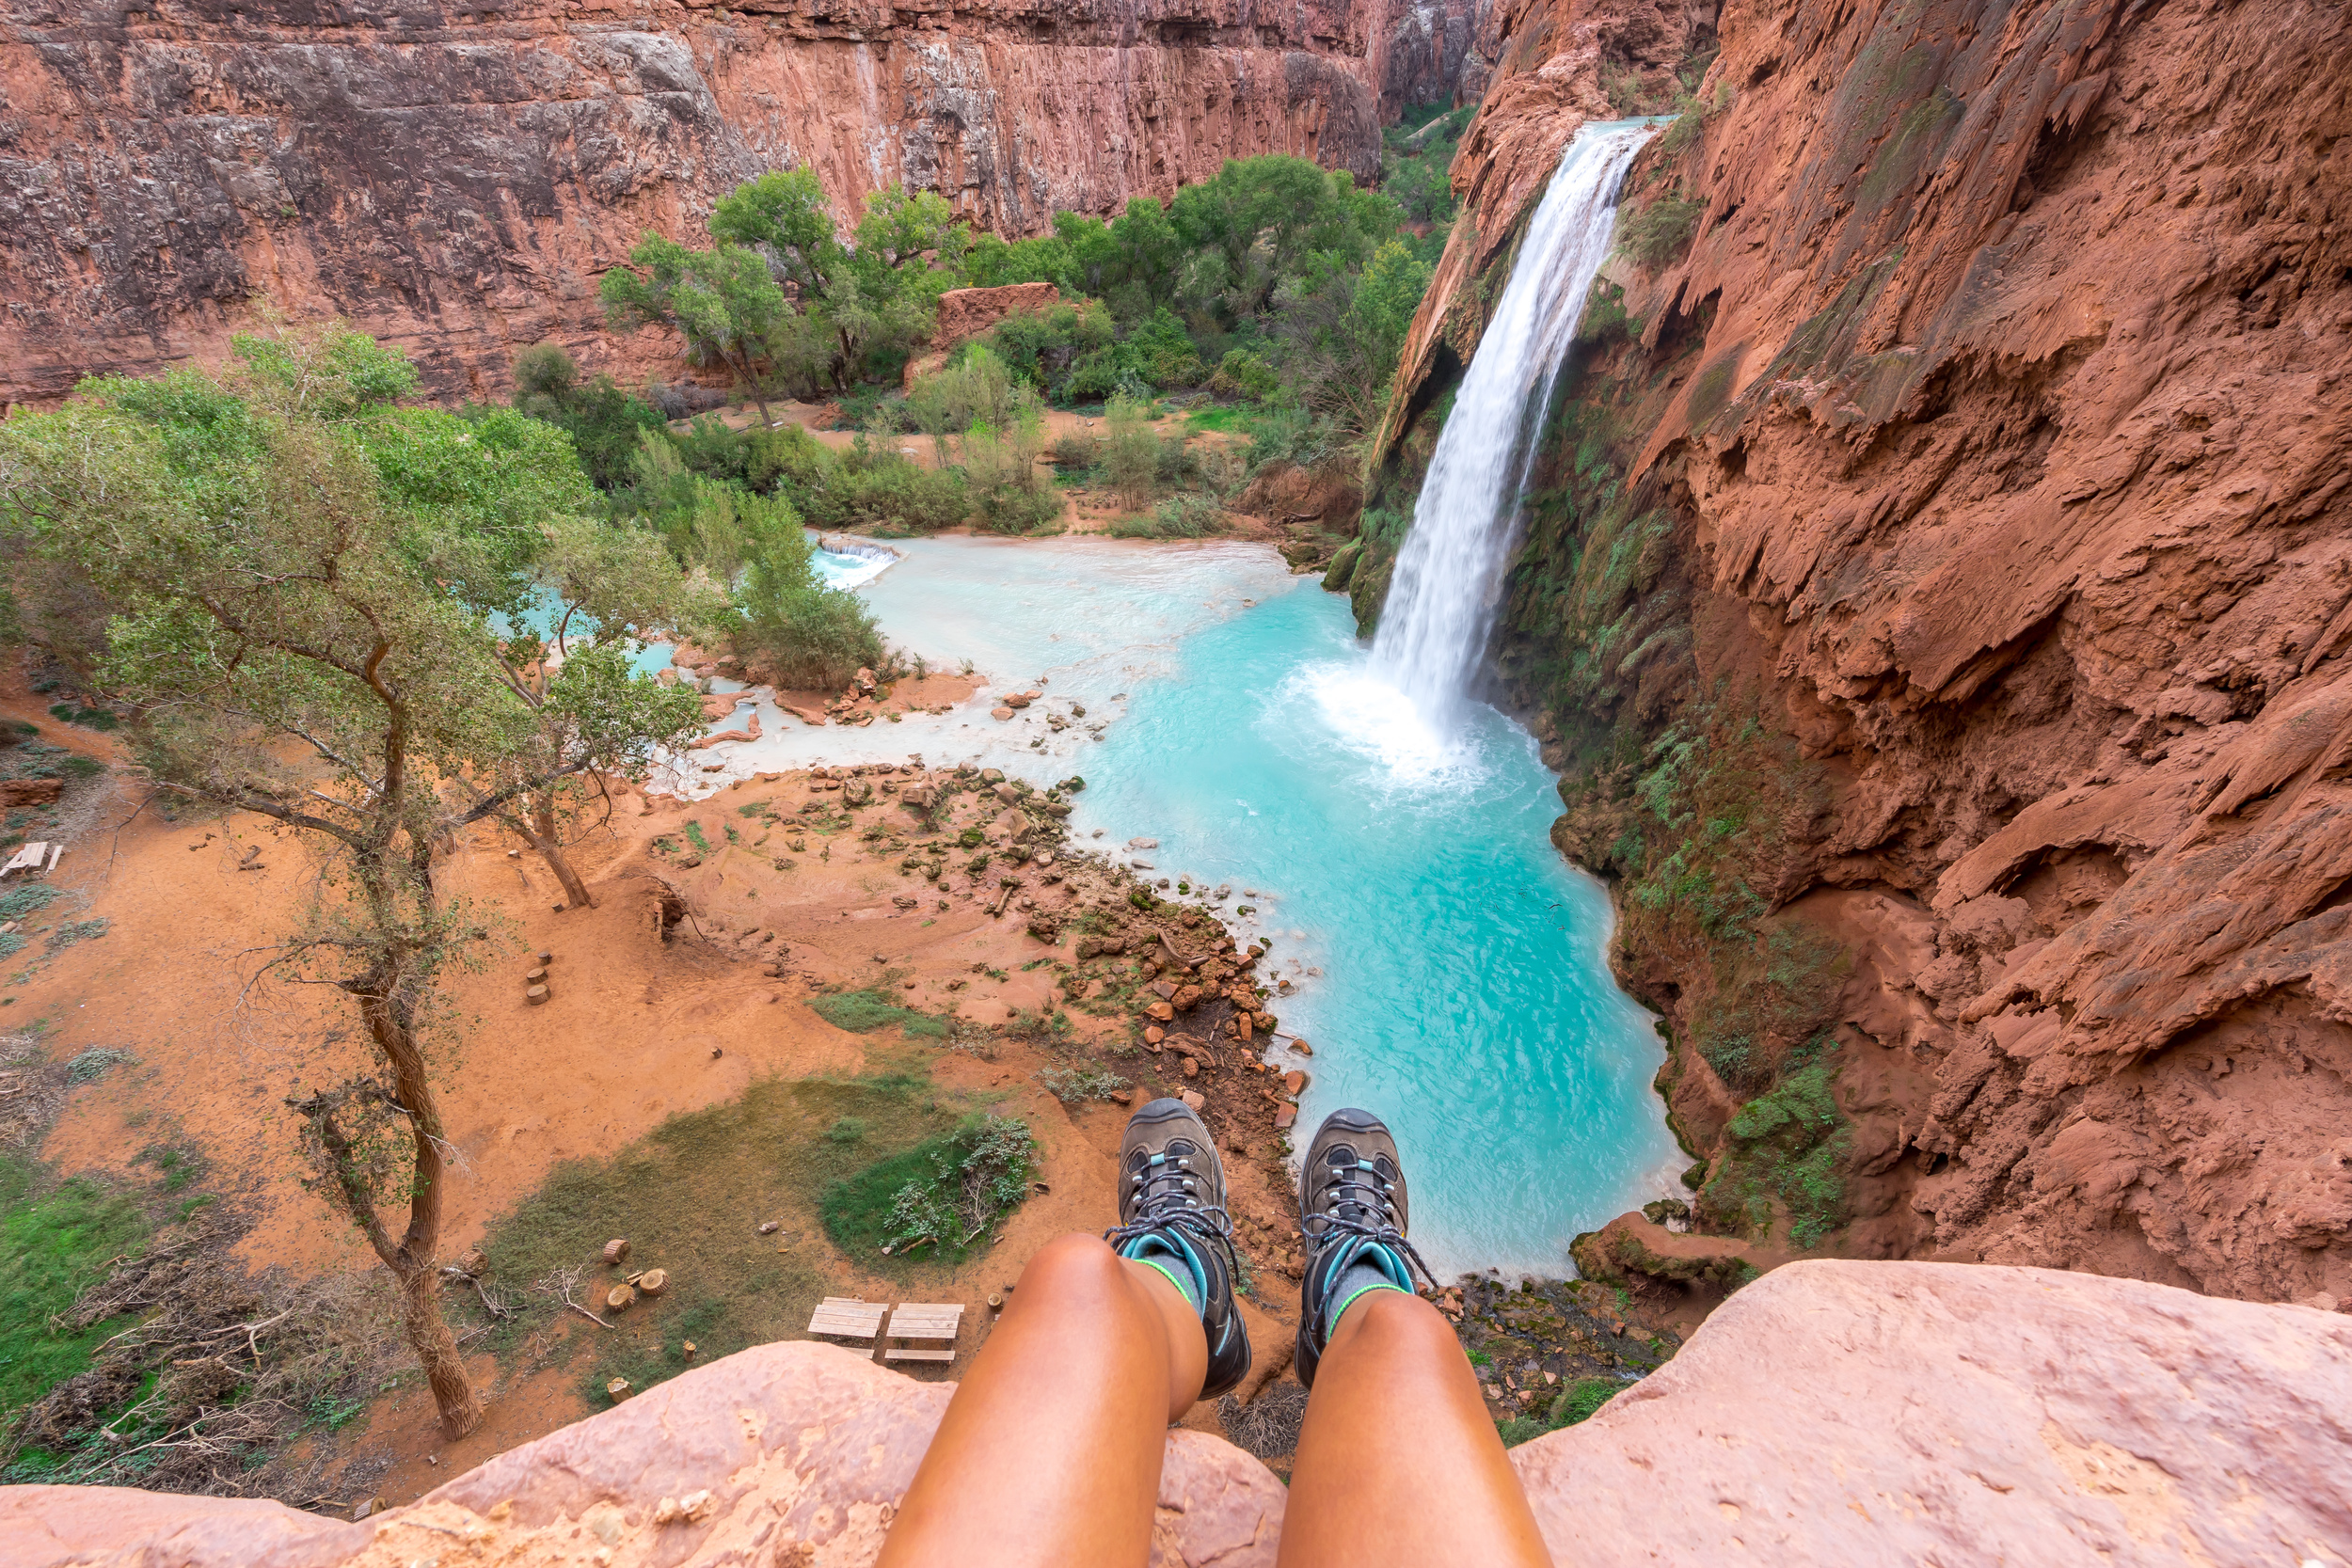 Havasu Falls is a sight for sore eyes after the 10 mile trek into the canyon. Take some time to rest your legs and admire the incredible contrast of the brilliant blue water and the stunning sandstone landscape.